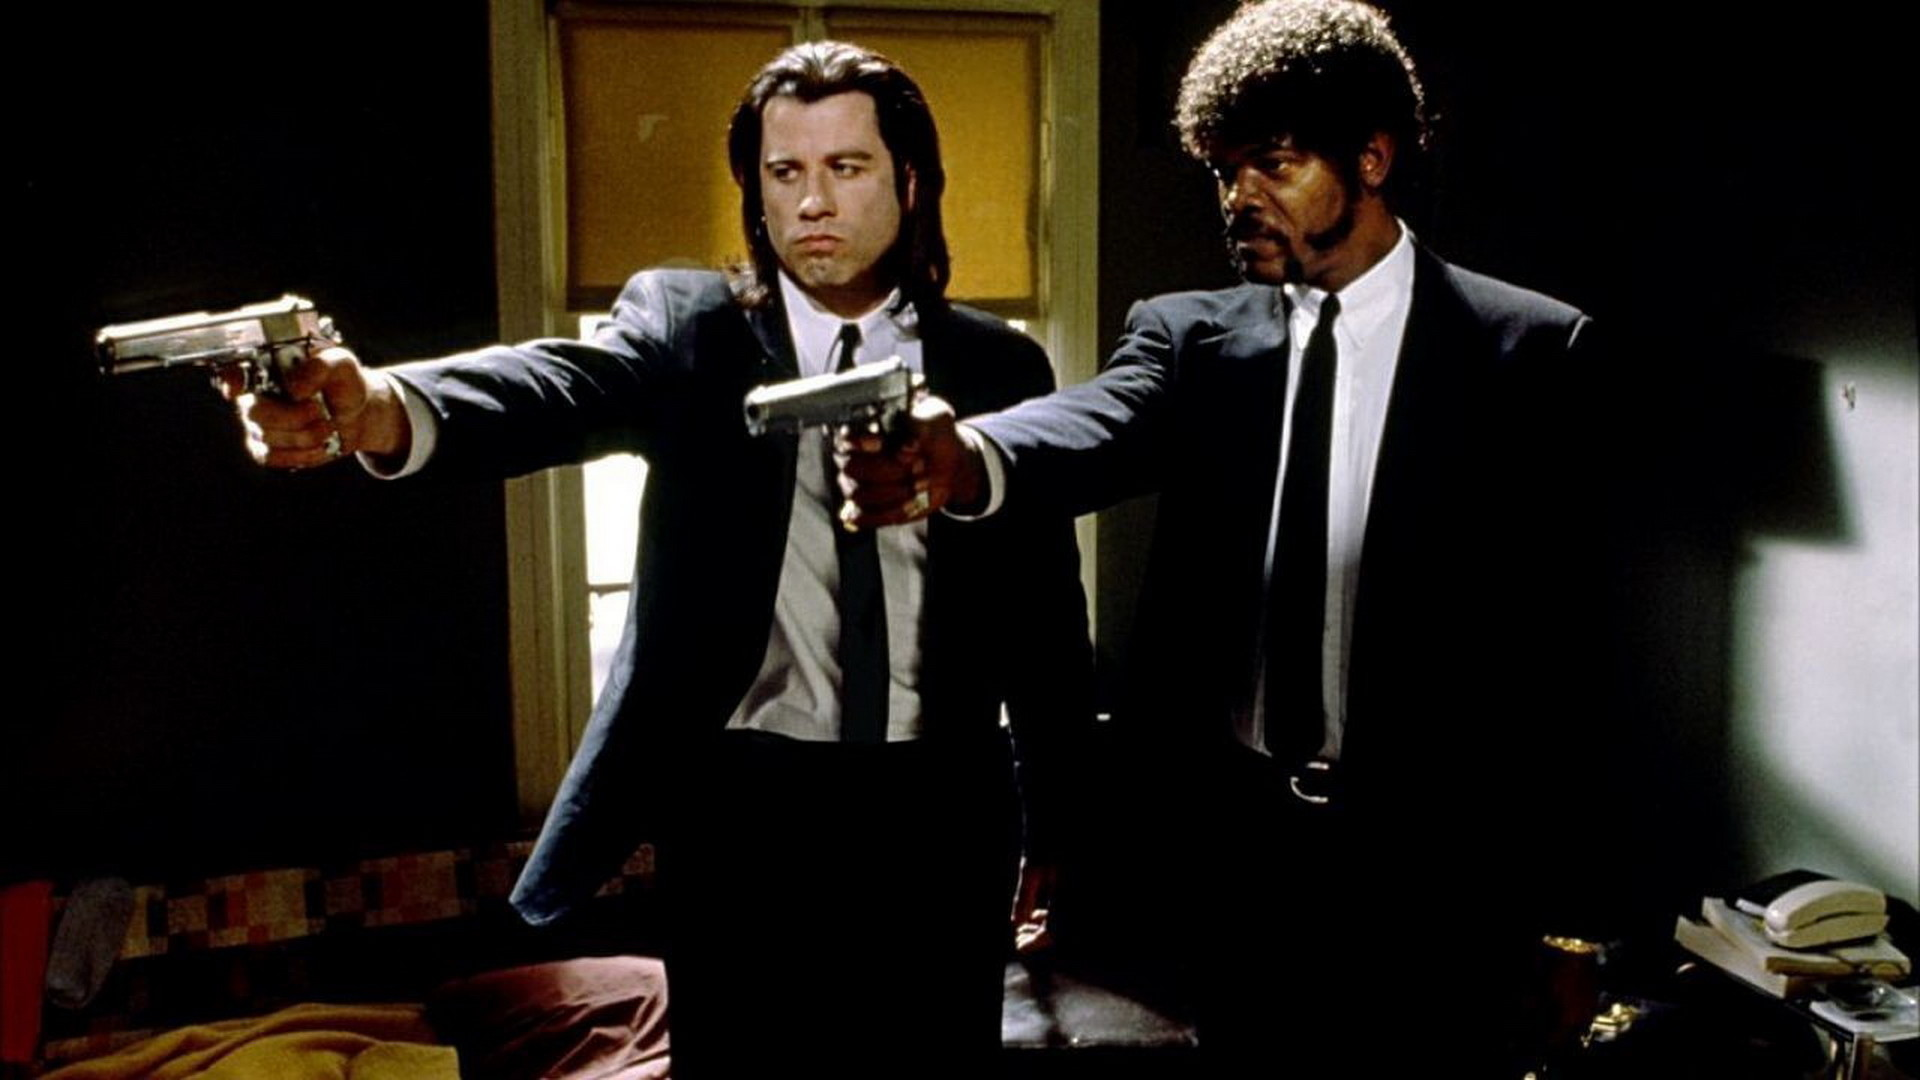 Bible Verse And Image Pulp Fiction Wallpaper: Pulp Fiction Wallpaper HD (68+ Images